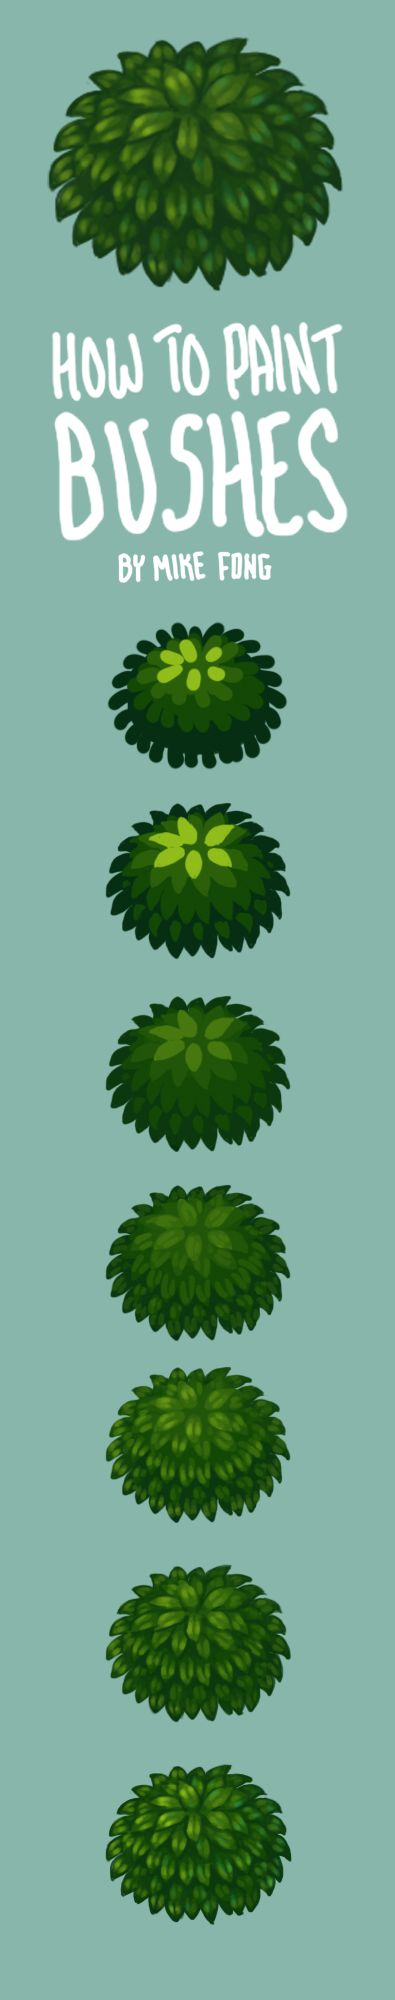 How to paint bushes by Mike Fong. Digital painting tutorial Hand painted textures low poly